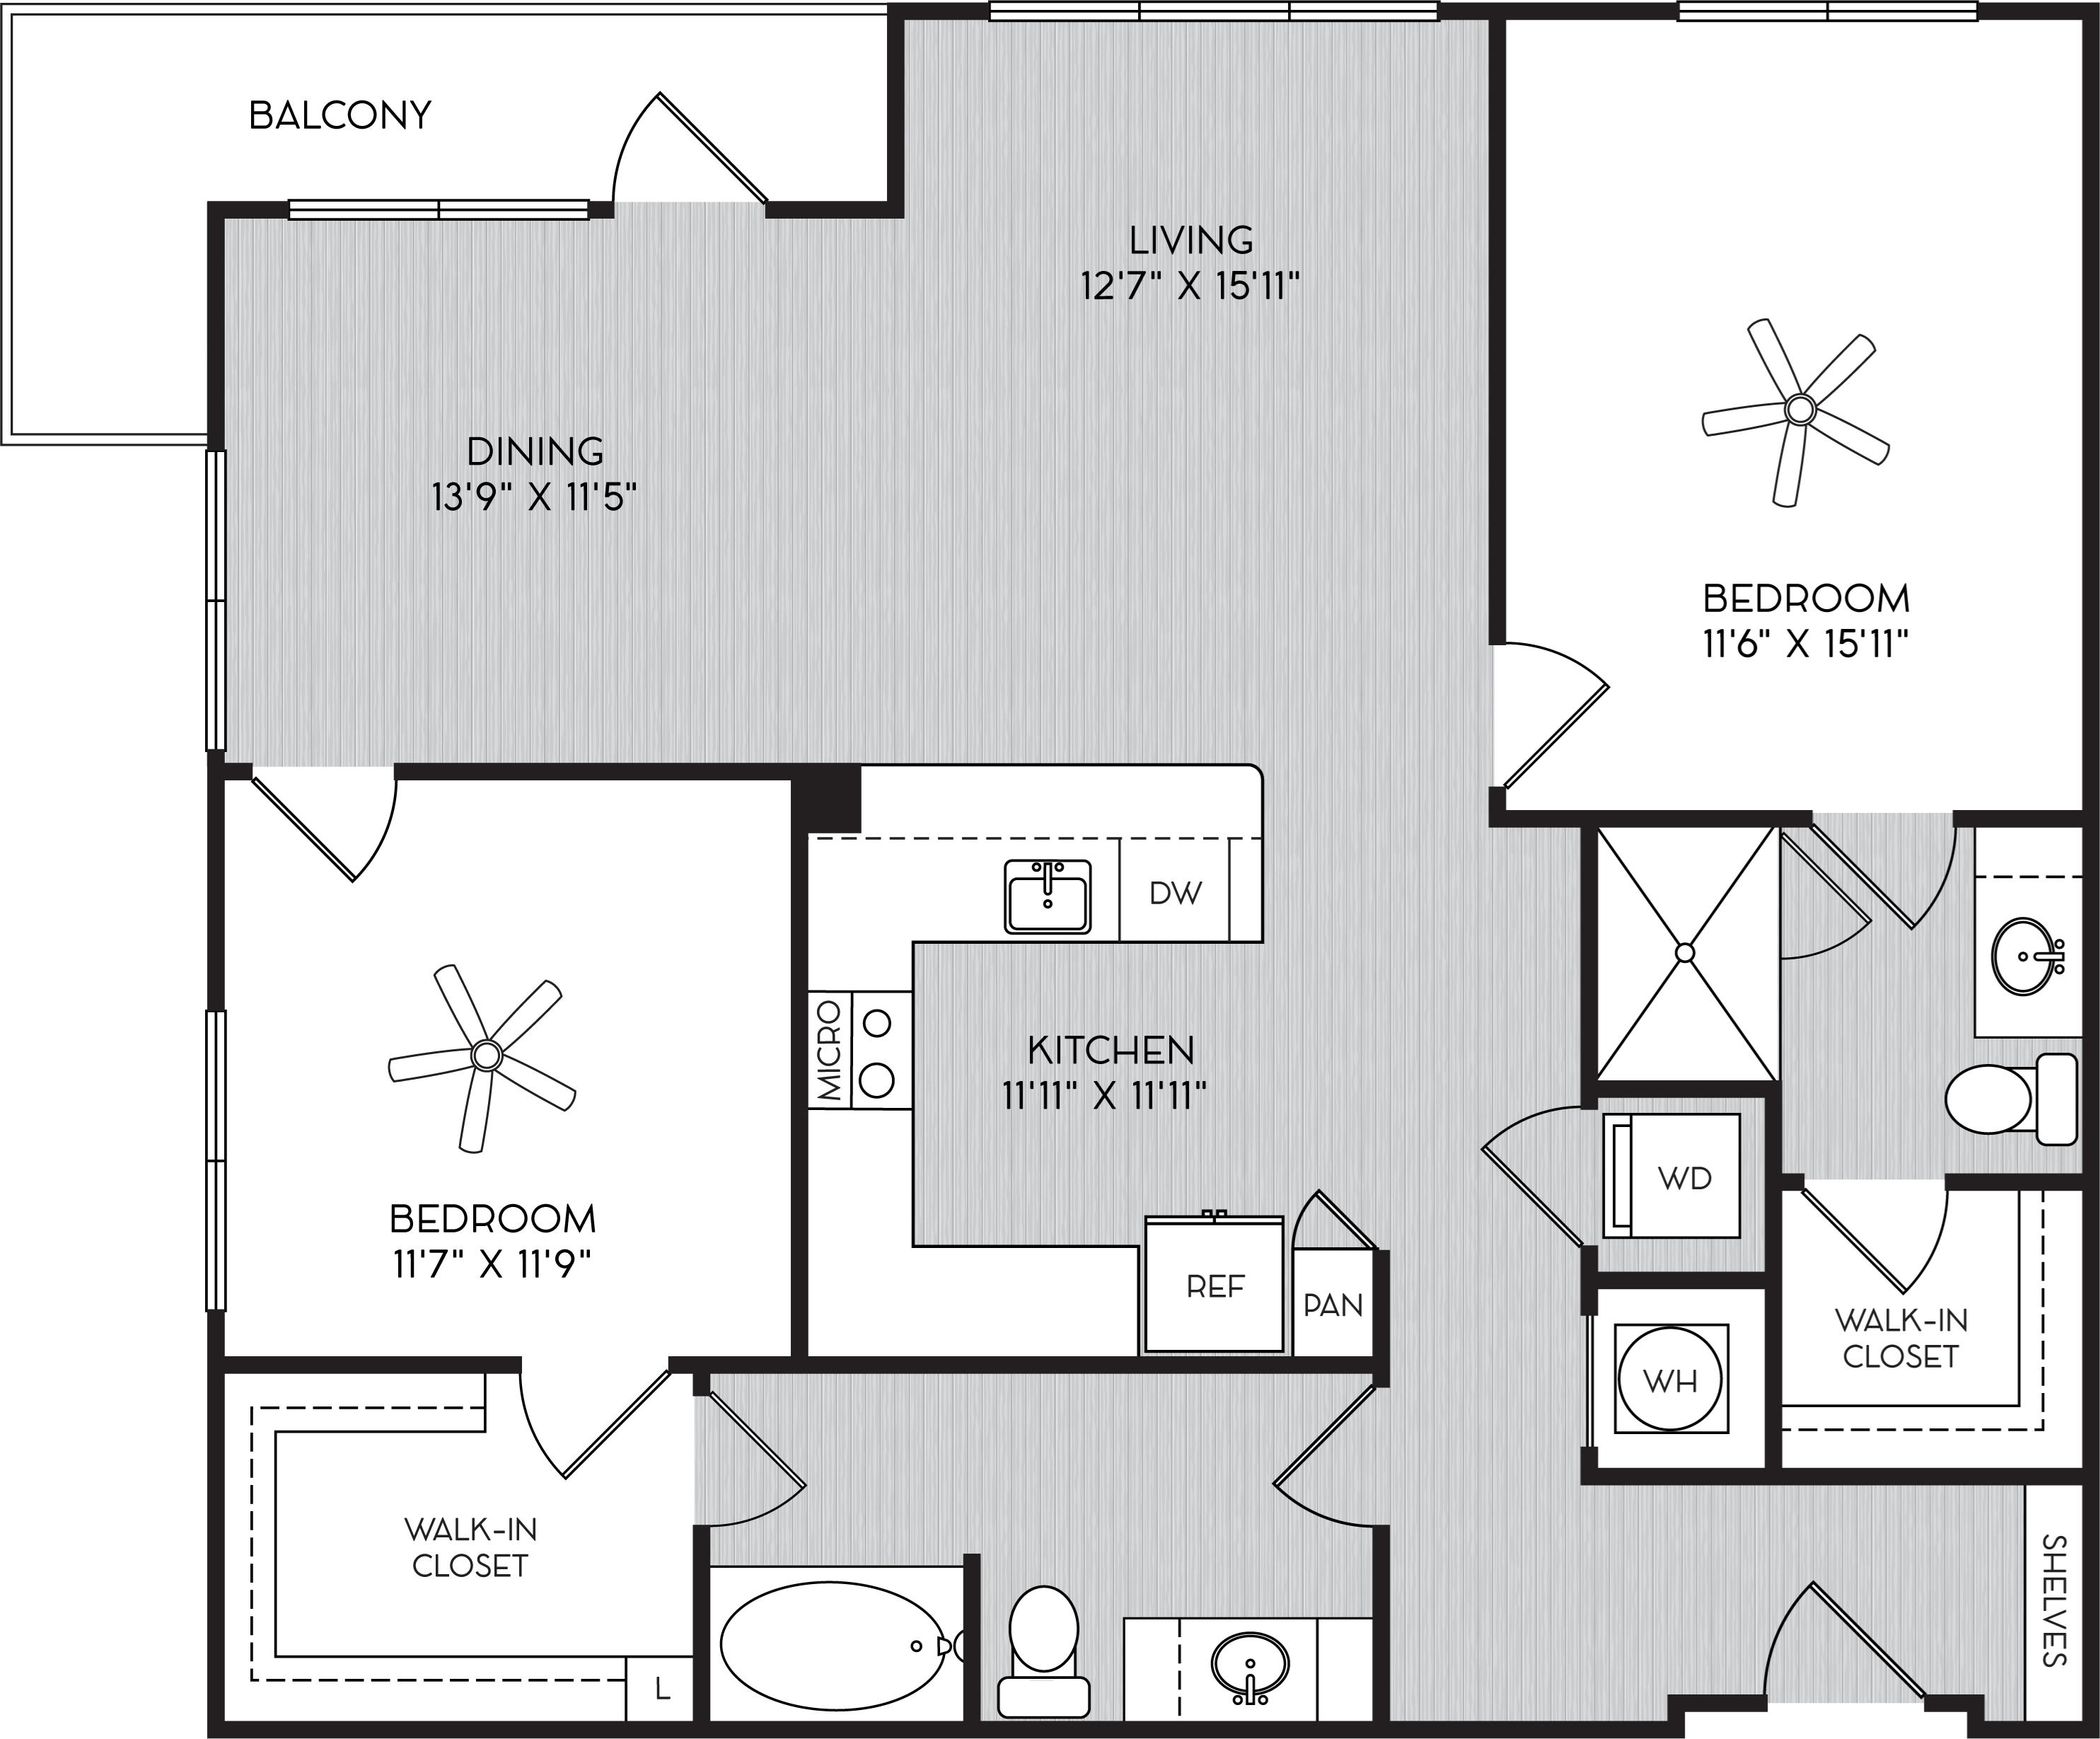 B2c Two Bedroom Floor Plan with Corner Balcony at Apartments in Vinings